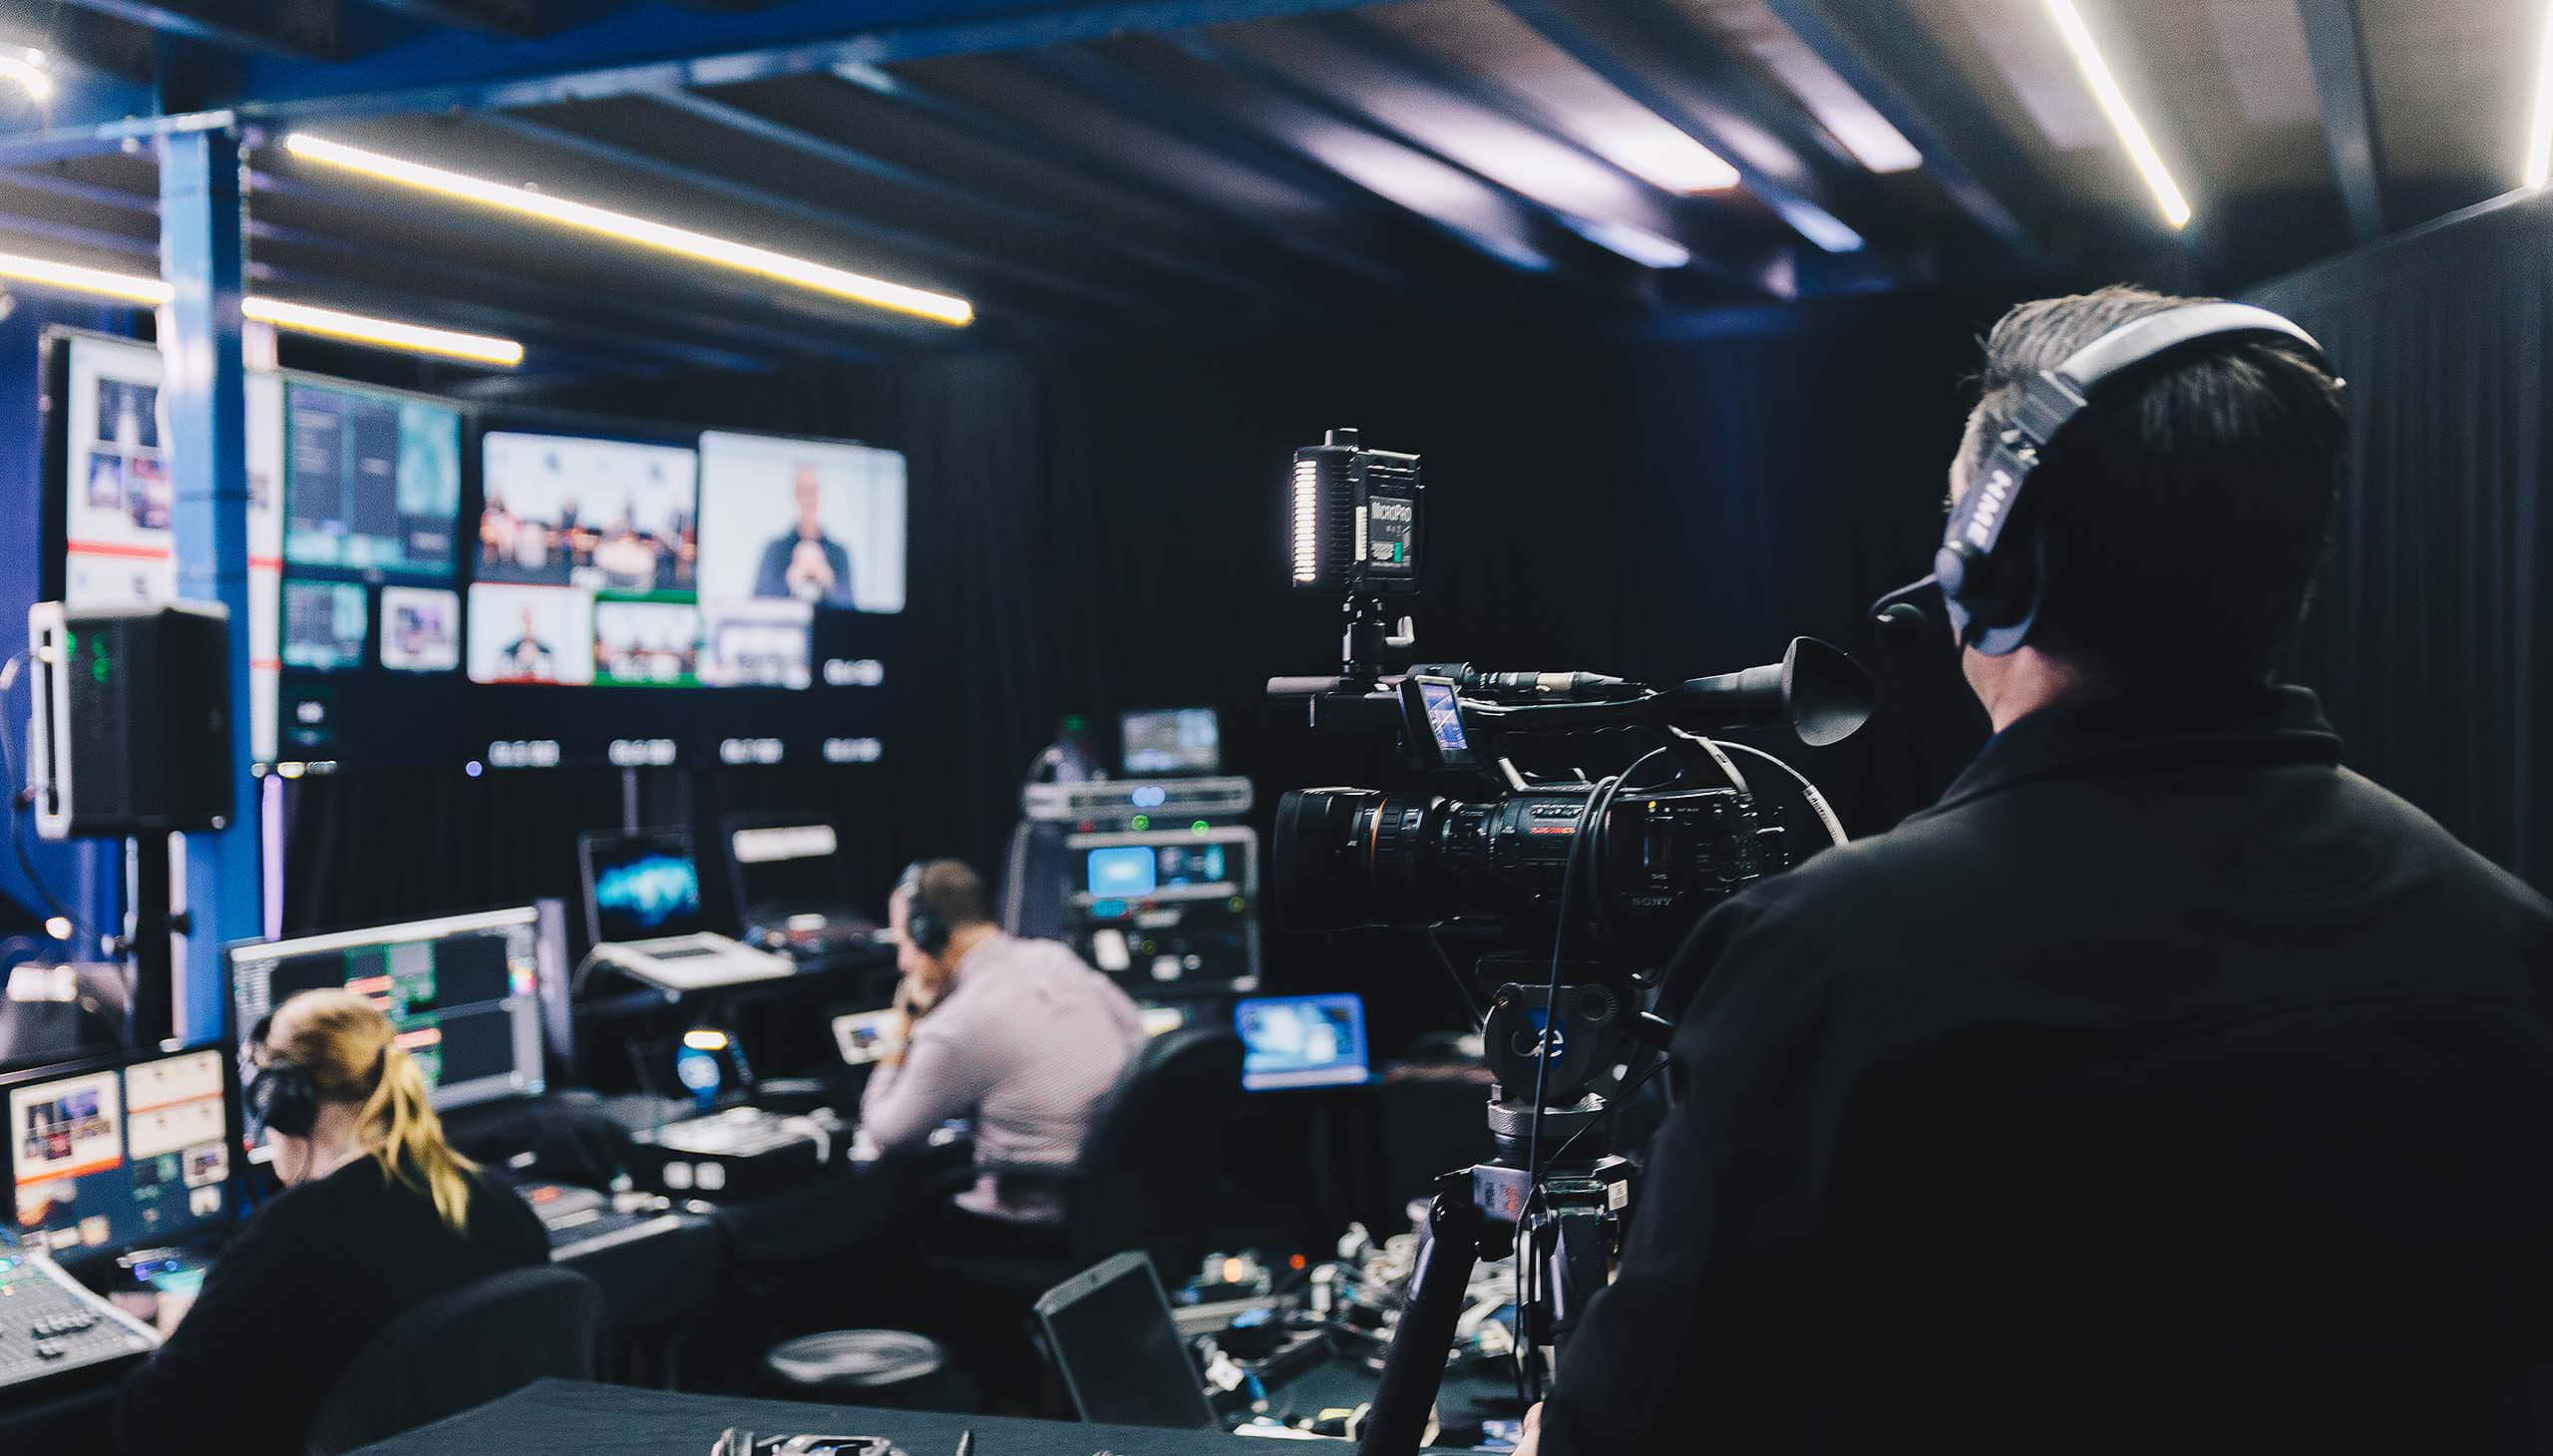 Camera operater and and production team in Virtual Event control studio